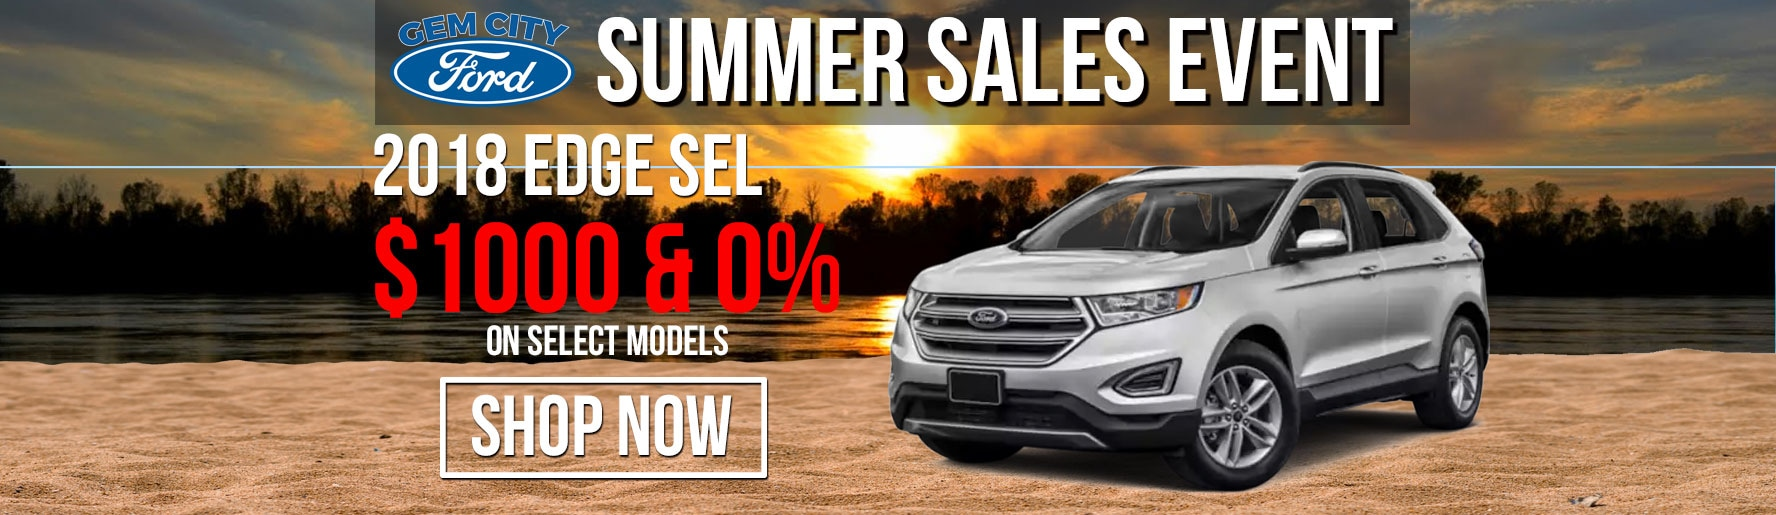 Gem City Ford Lincoln | Ford, Lincoln Dealership in Quincy IL